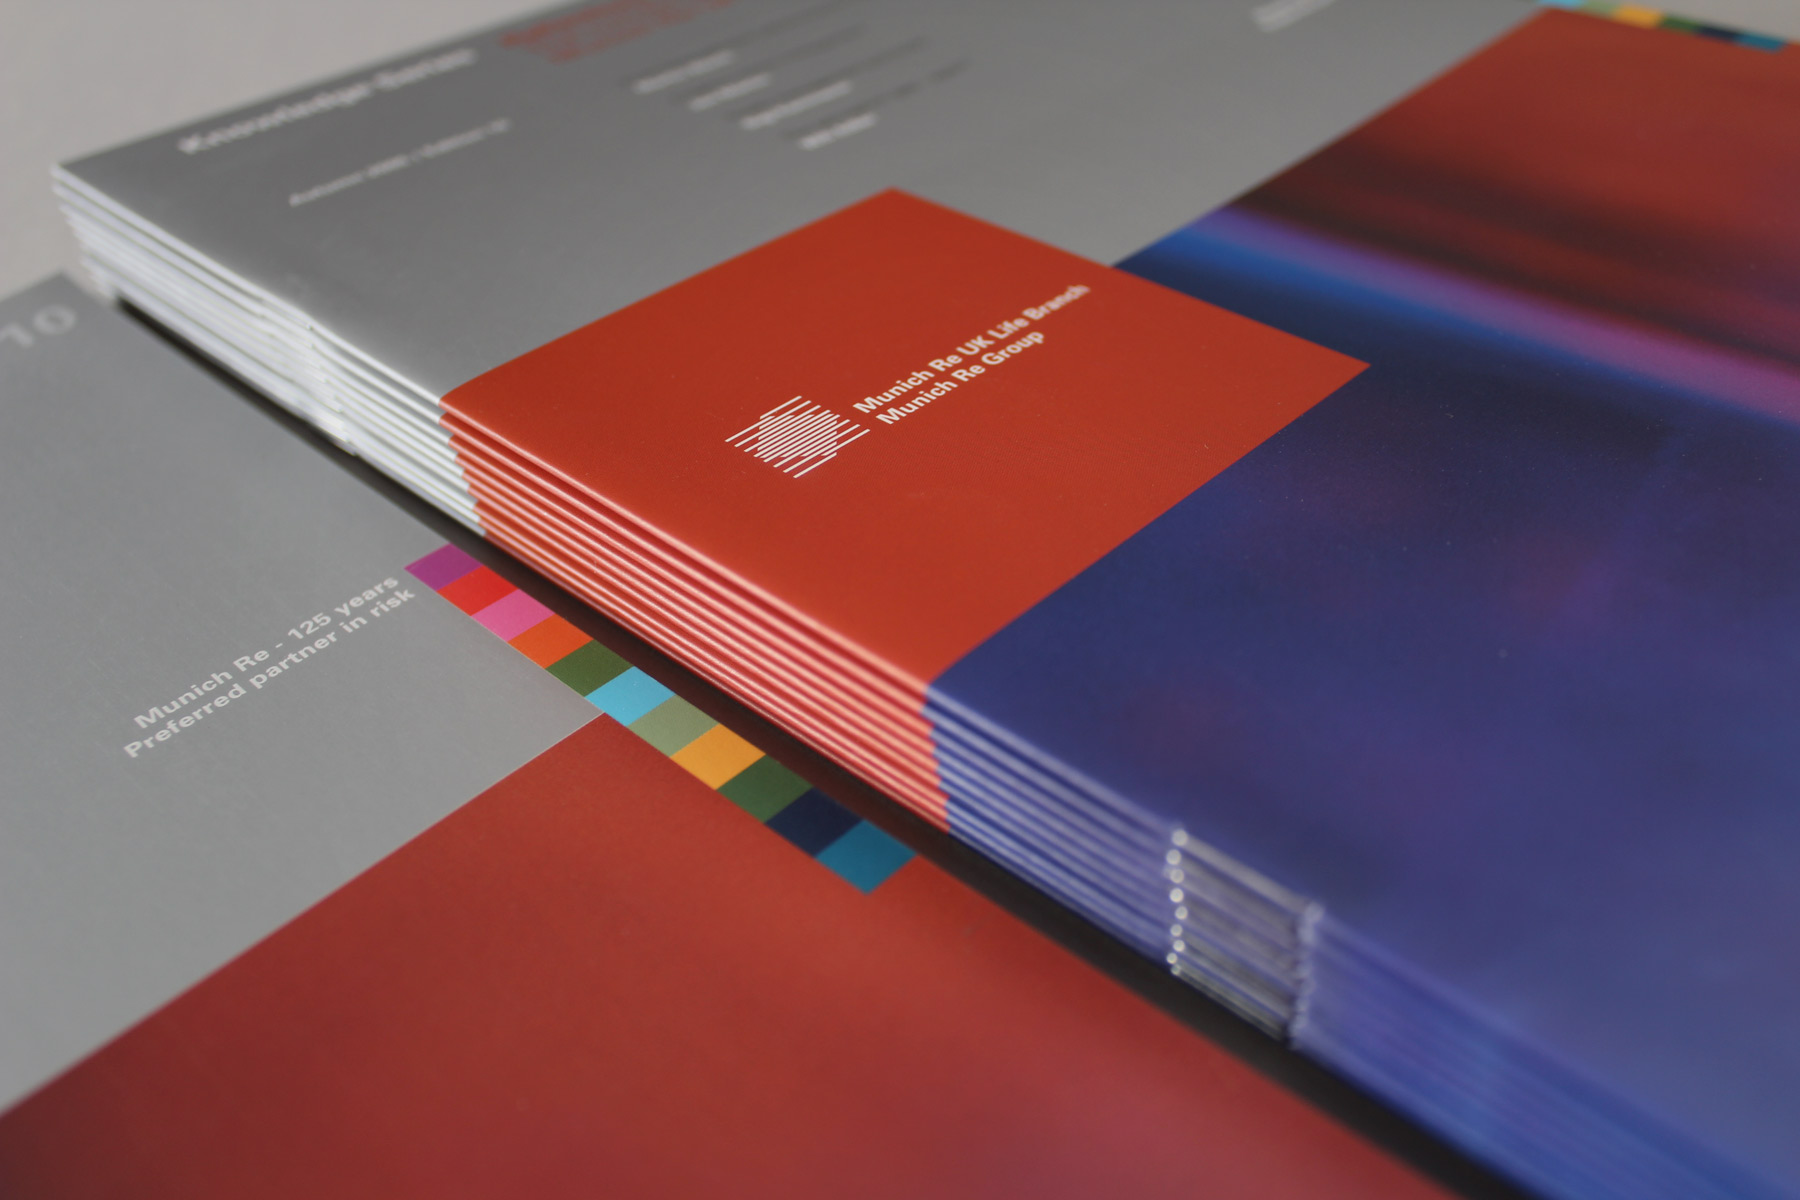 We used matt silver and bright imagery to convey a publication both contemporary and controlled.